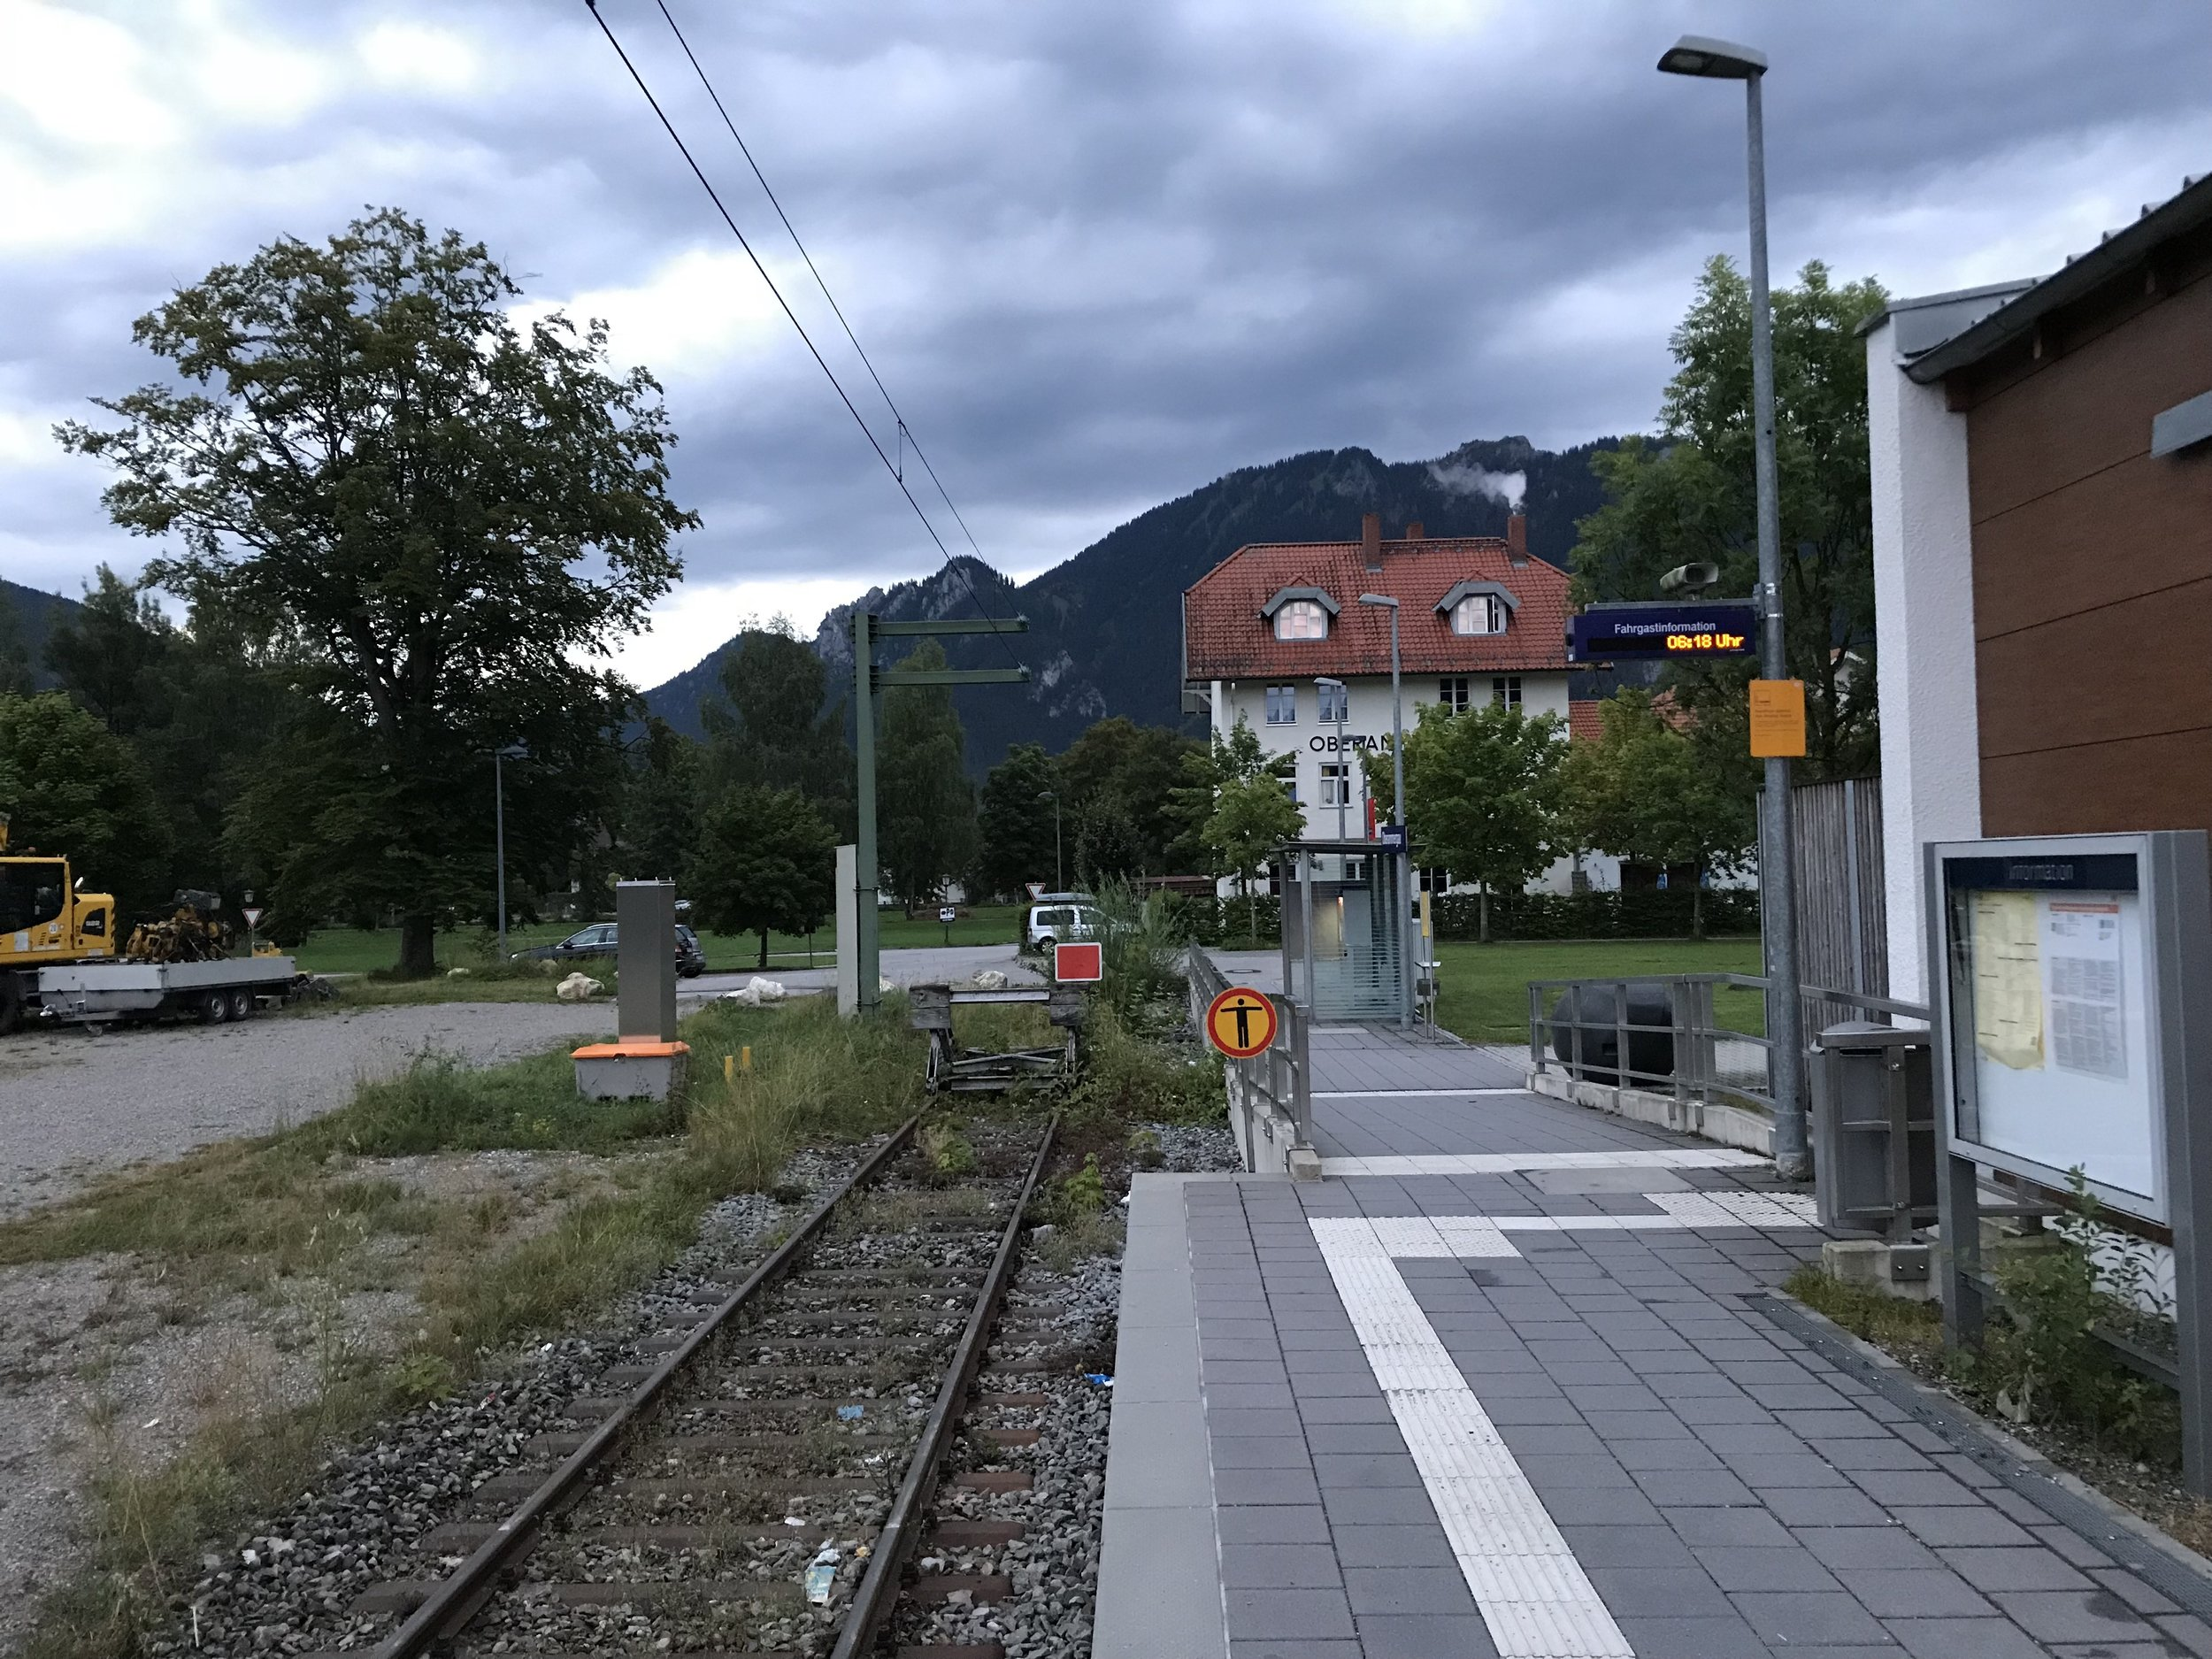 The end-of-the-line: Oberammergau Train Station, August 24, 2018, around 6 o'clock in the morning.